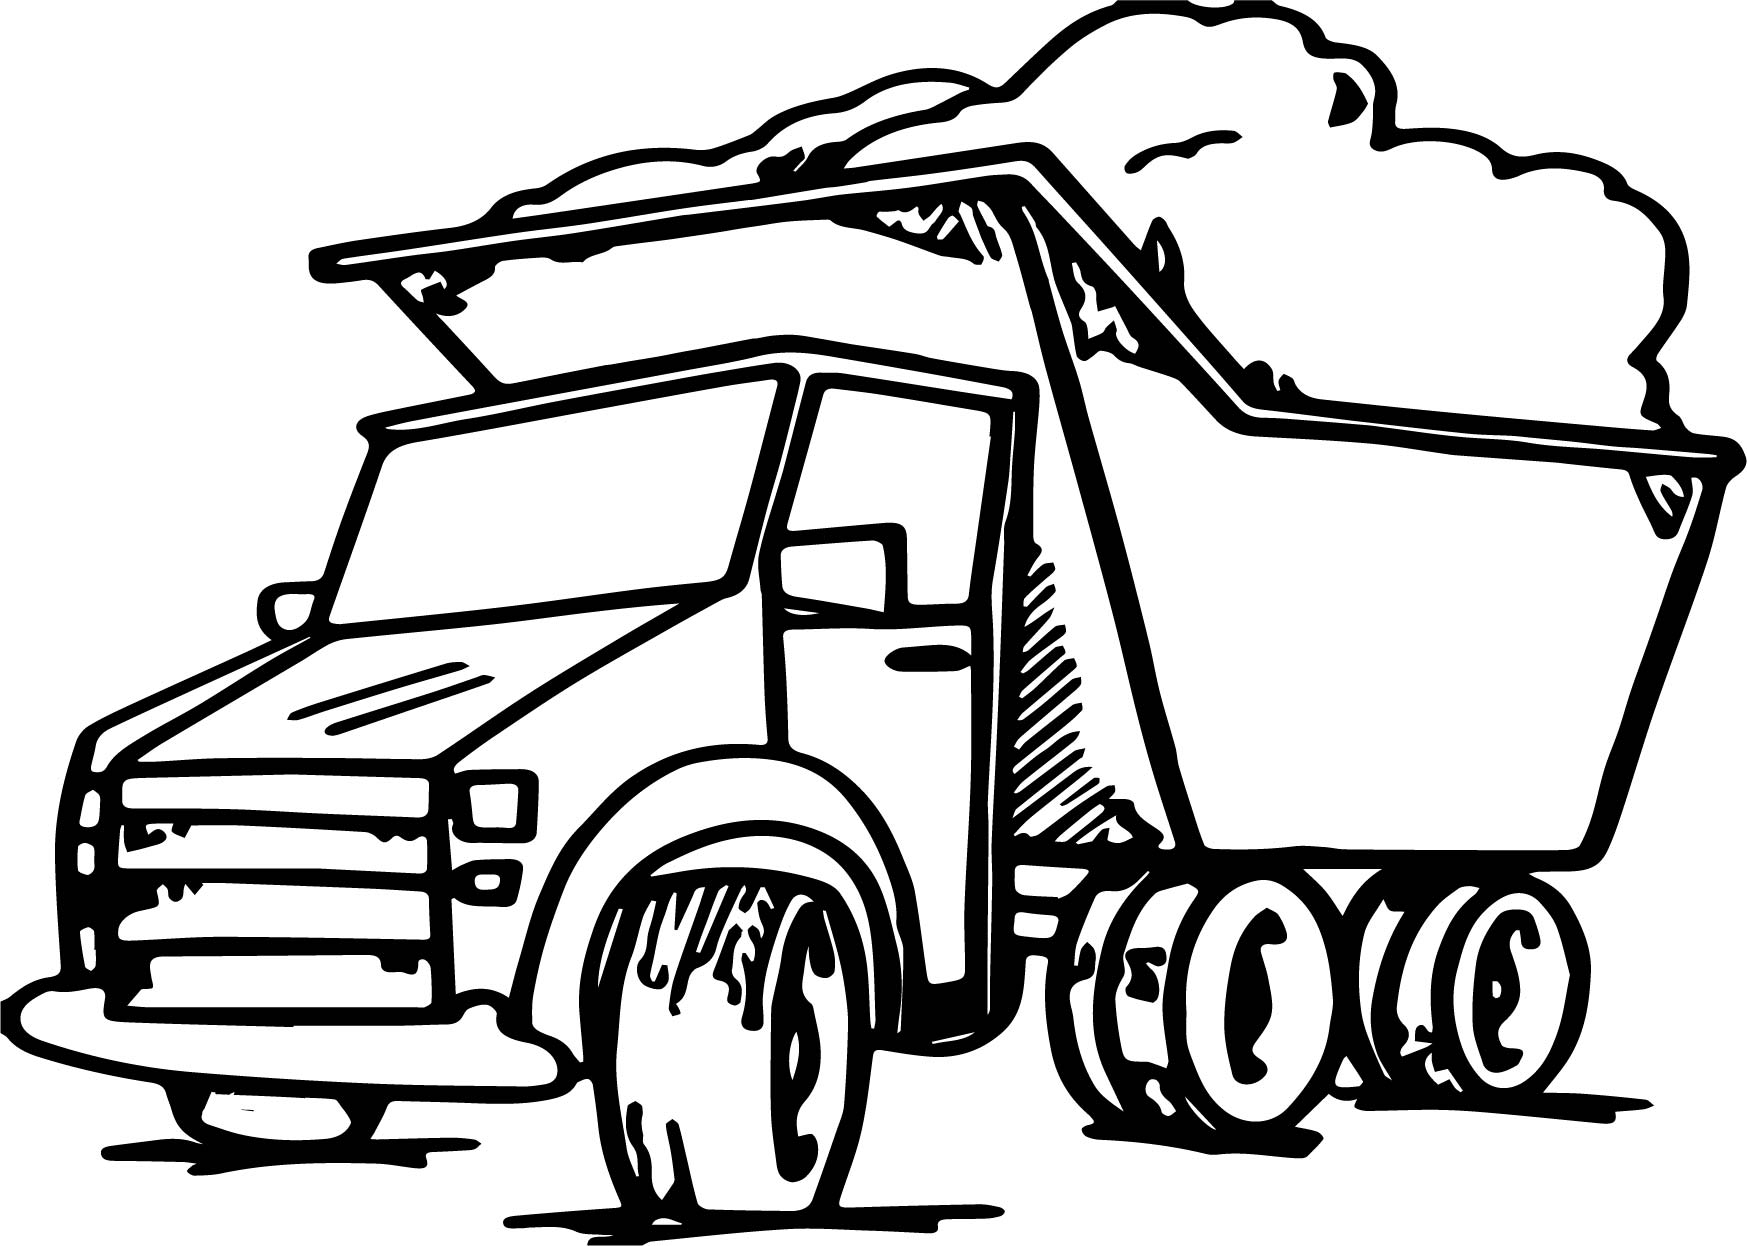 Garbage truck coloring book pages - Garbage Truck Coloring Page Wecoloringpage